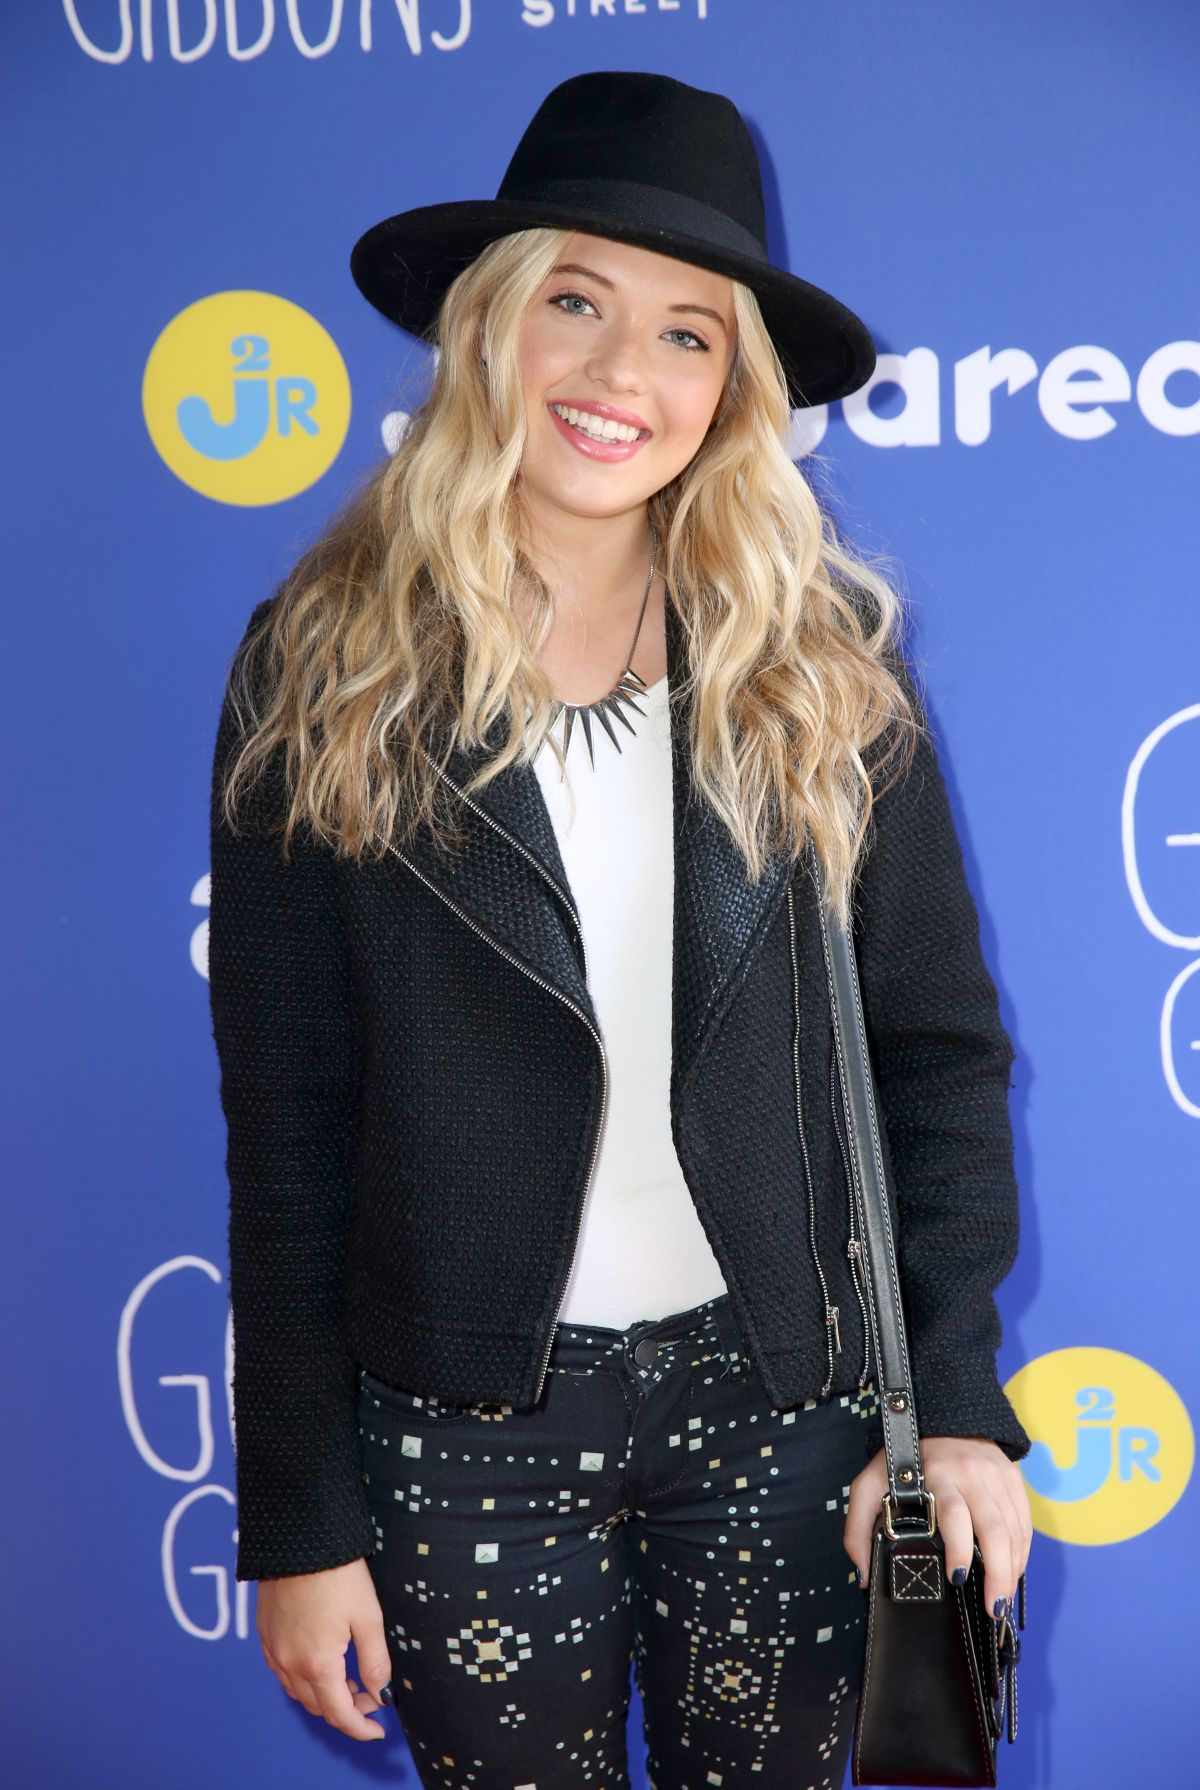 LAUREN TAYLOR at Just Jared Fall Fun Day in Los Angeles 10/24/2015